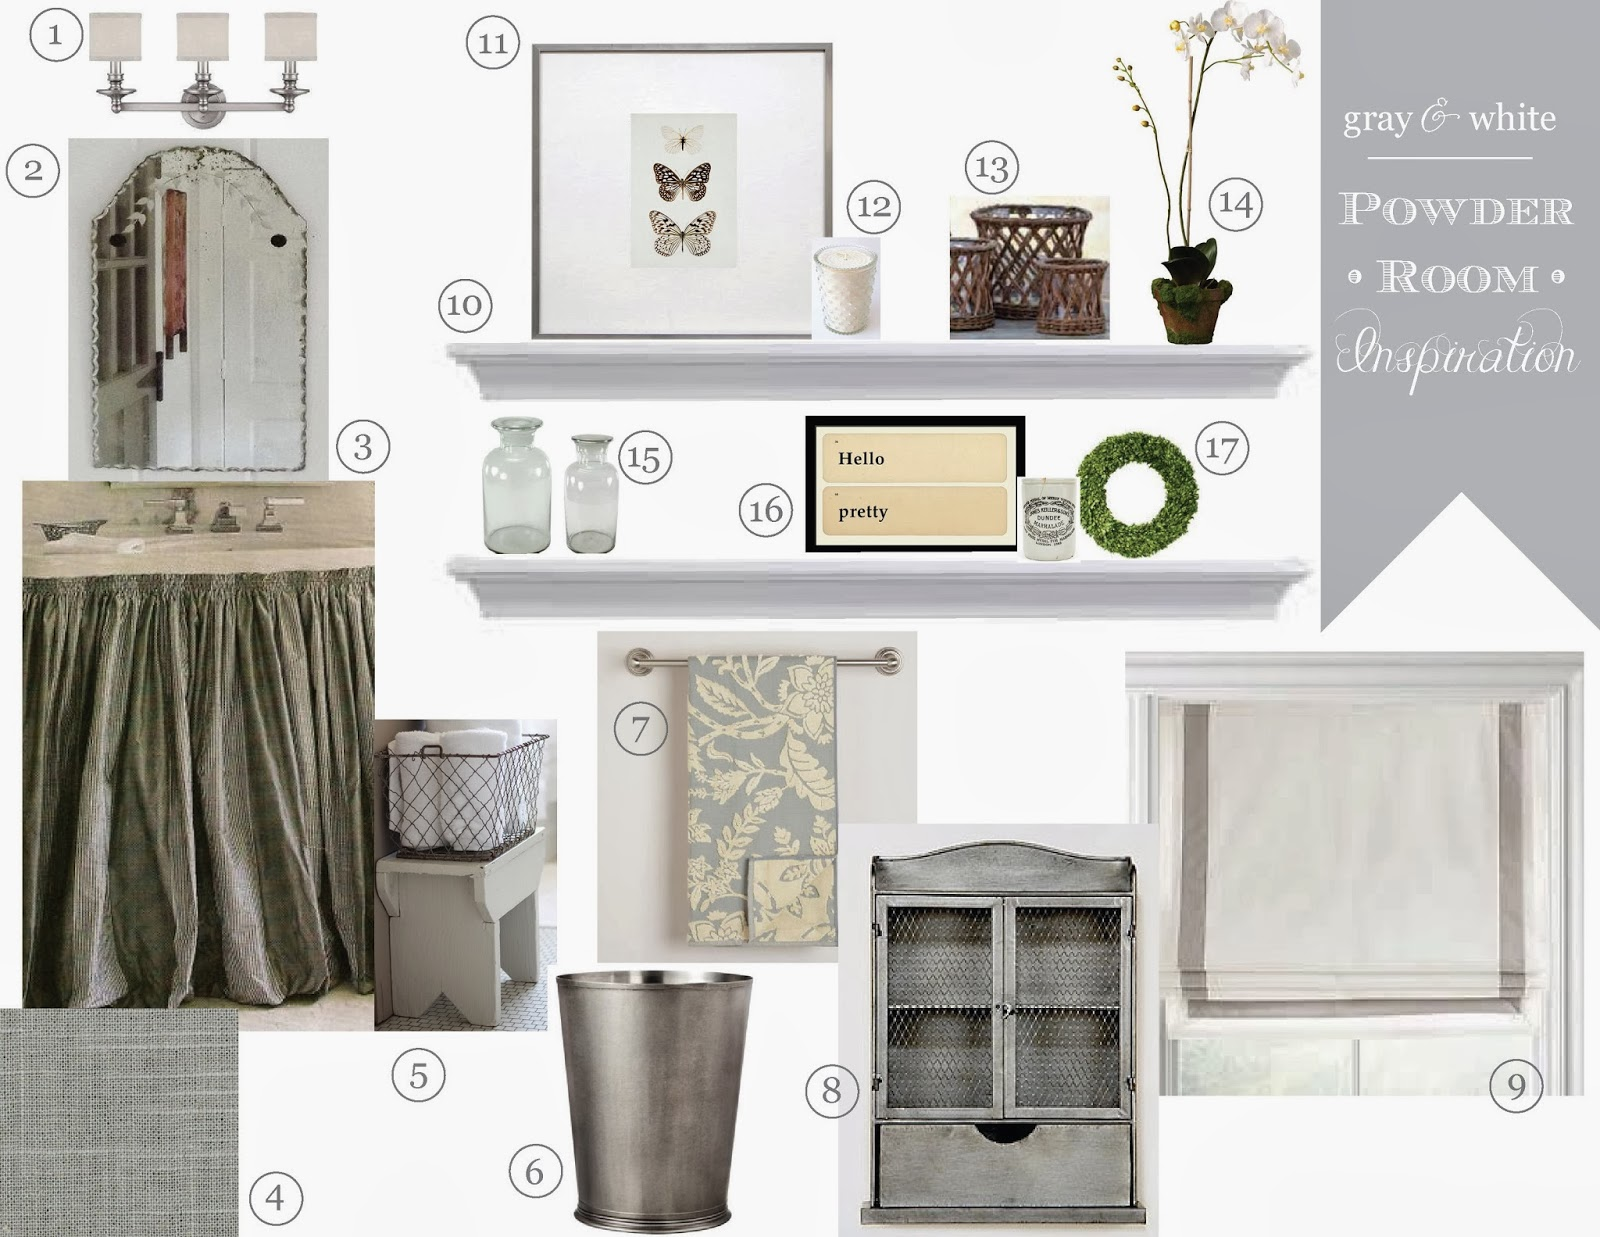 12th And White Powder Room Inspiration